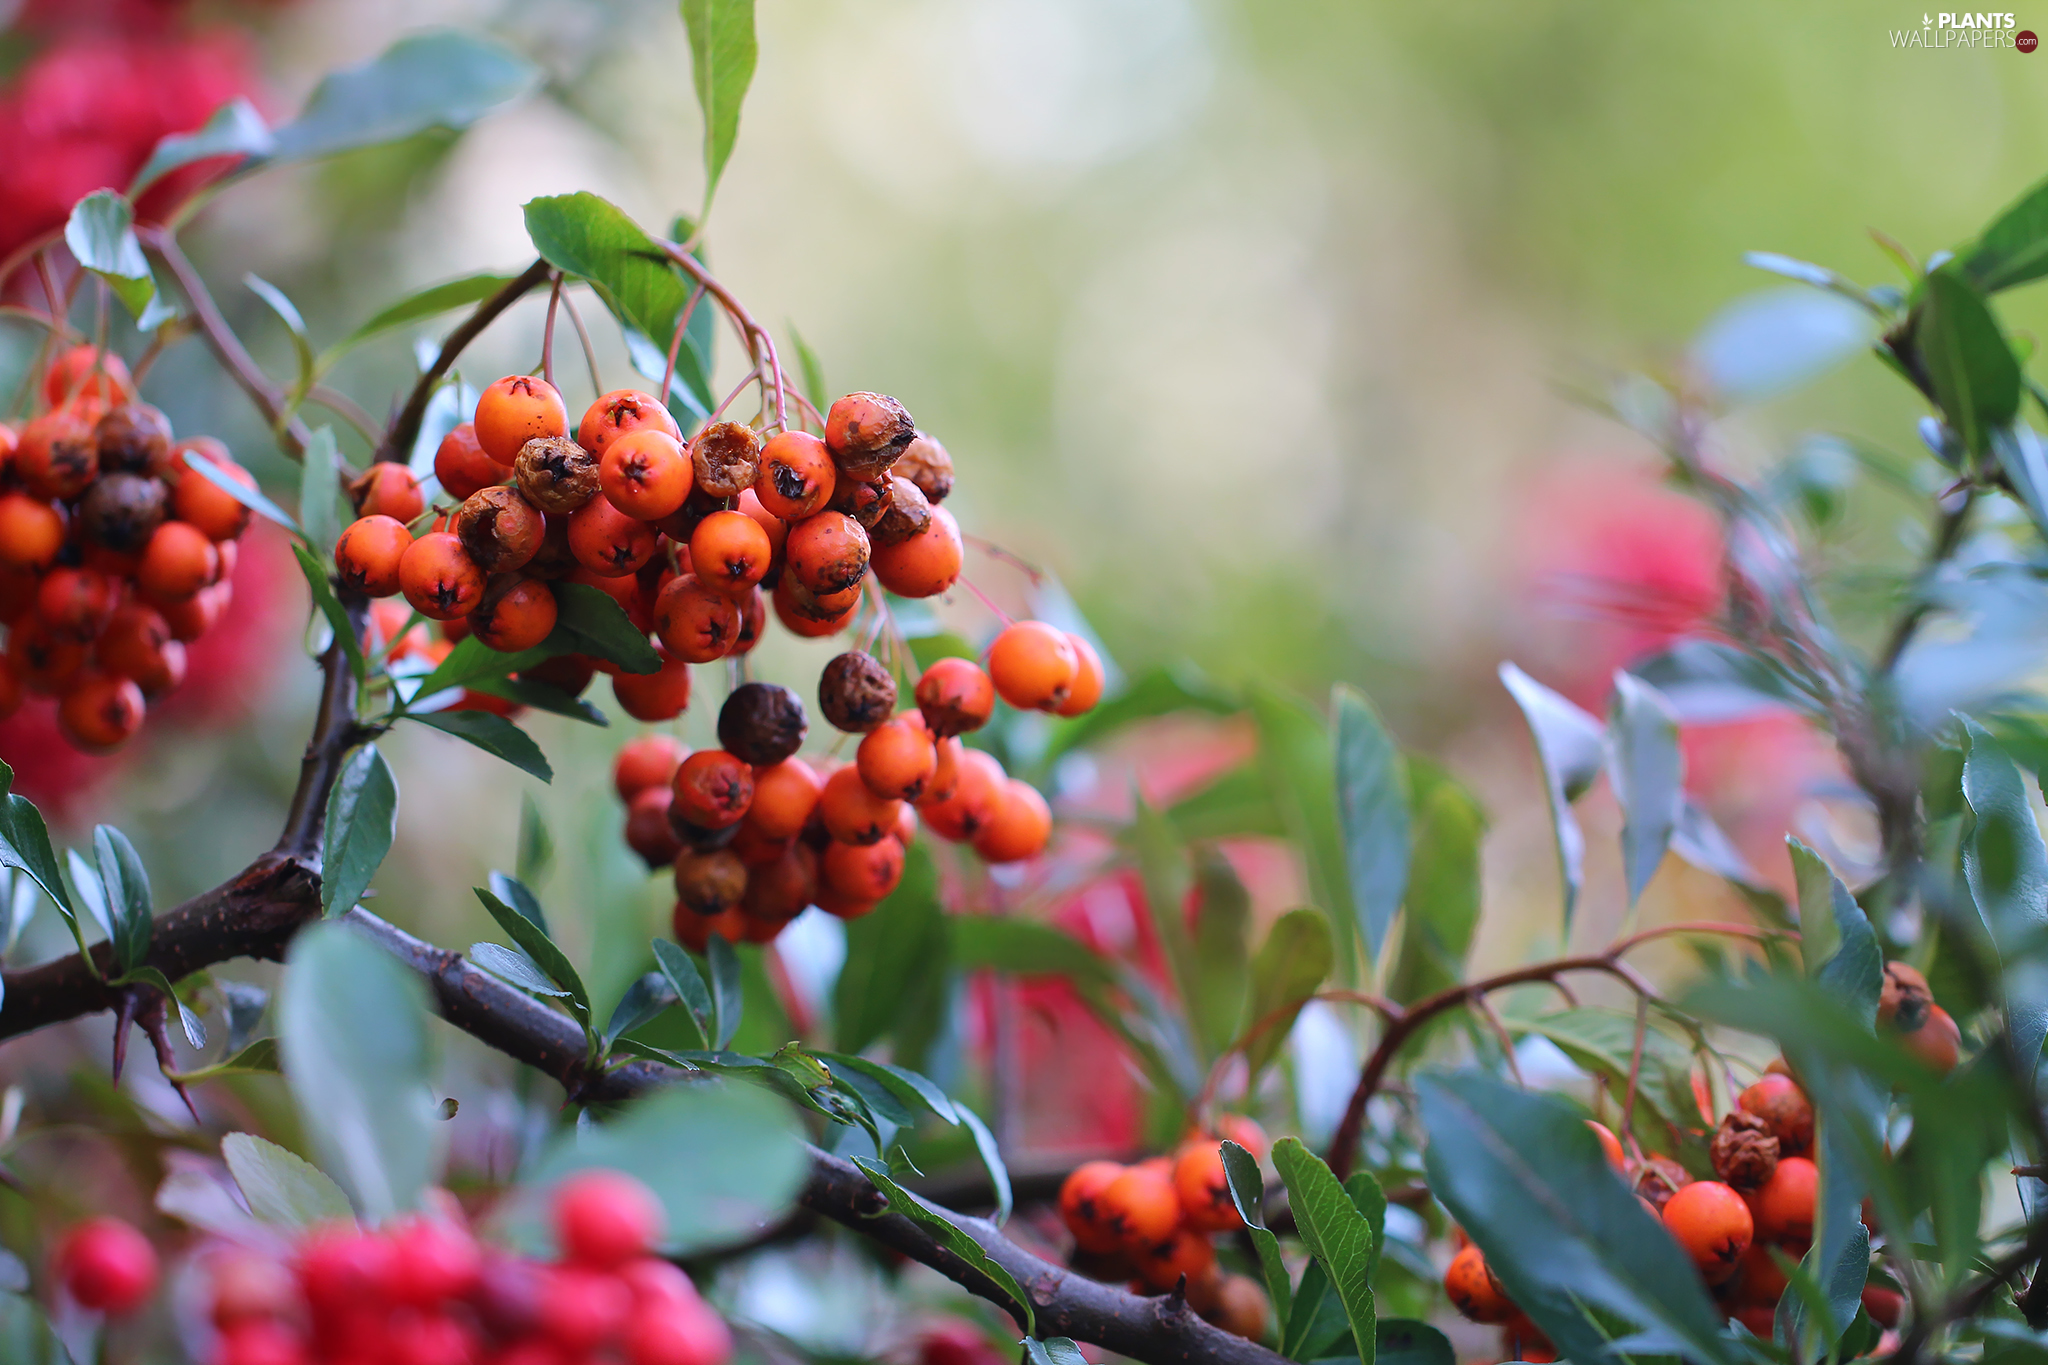 Bush, Fruits, Scarlet firethorn, Red